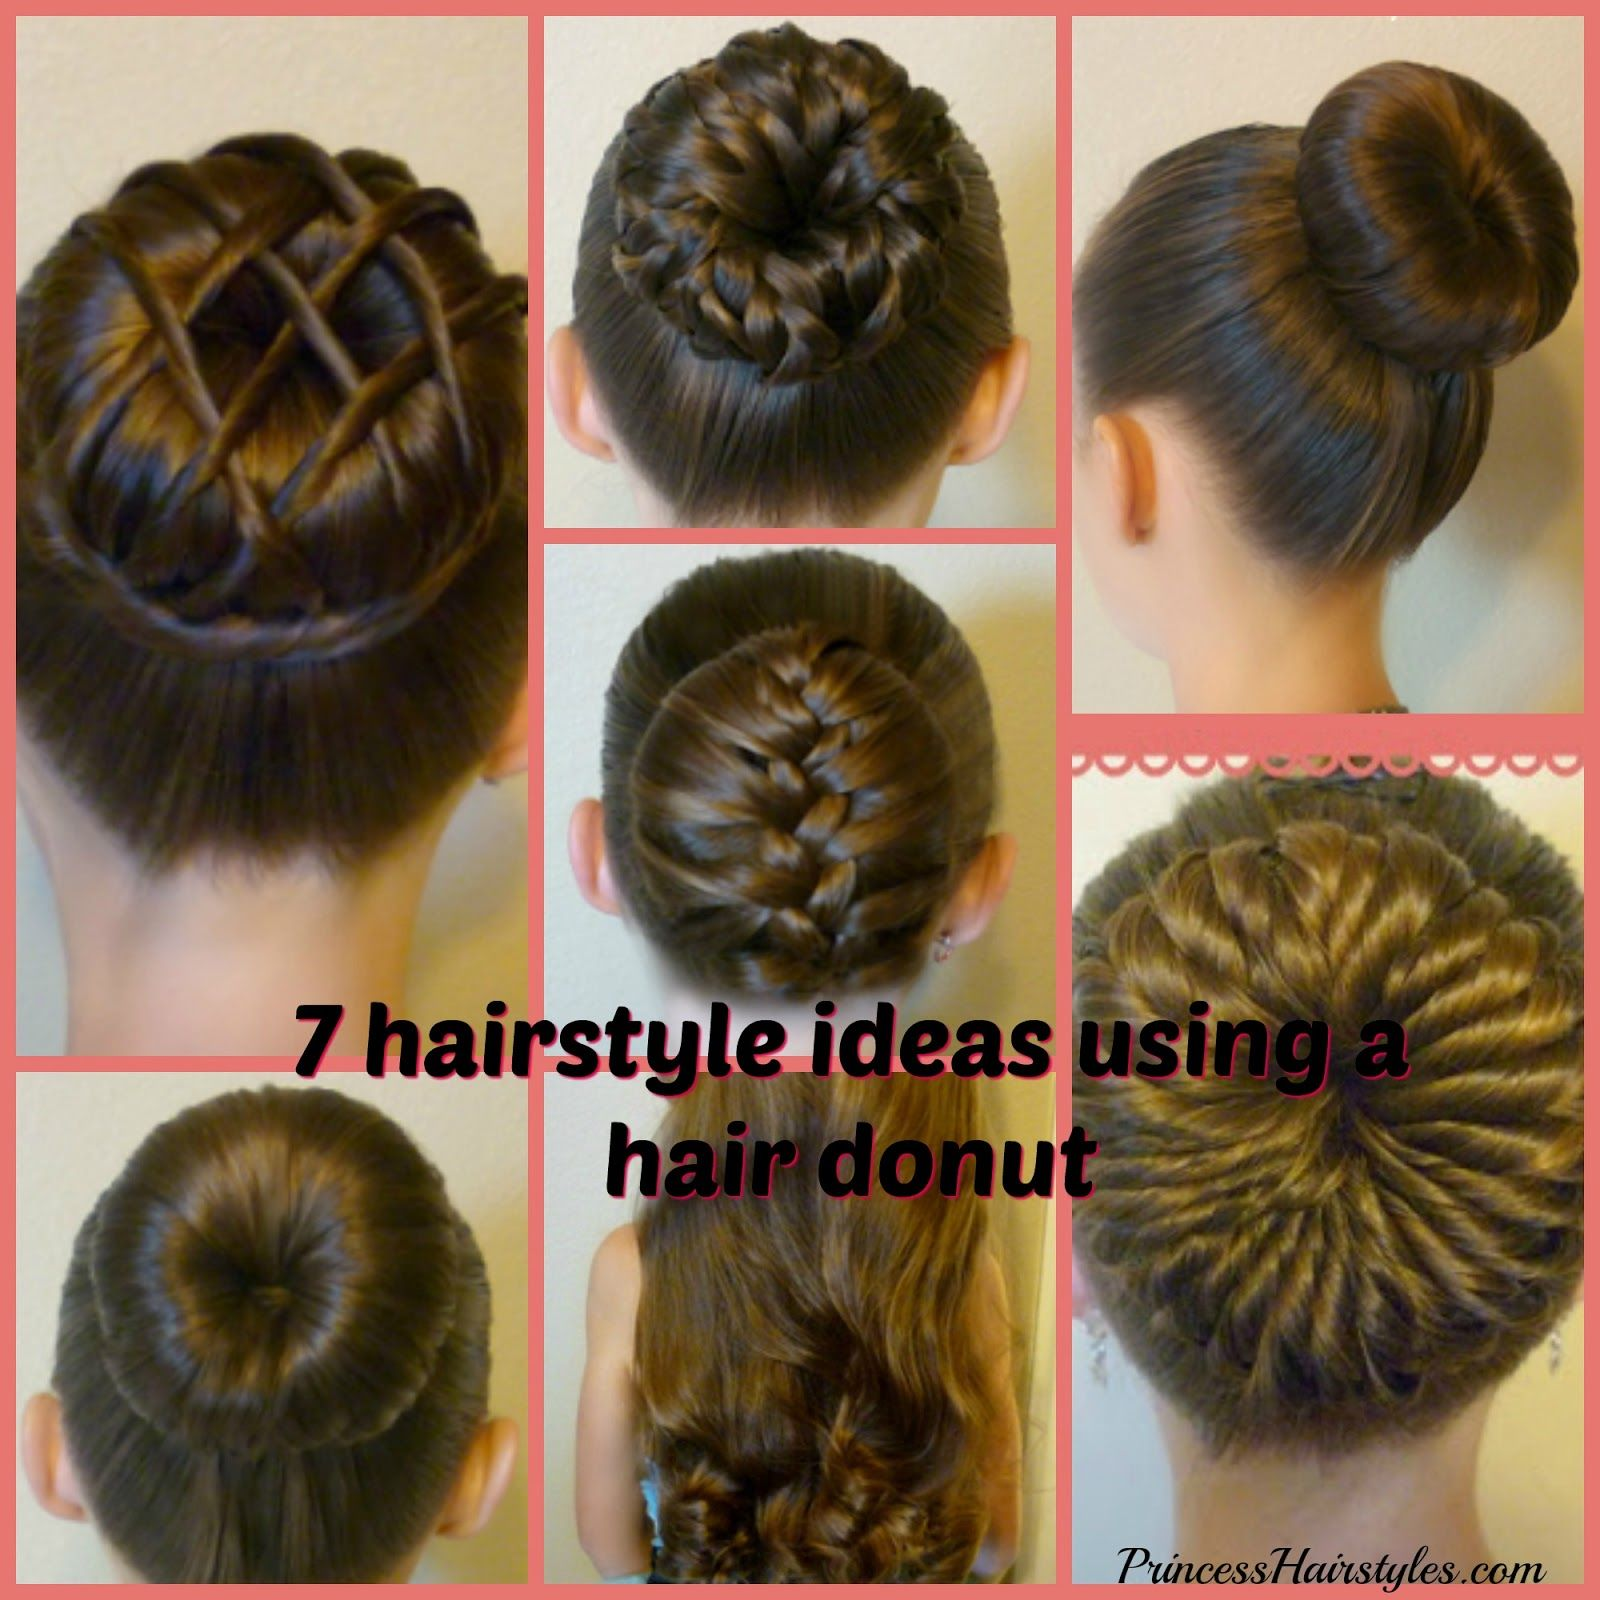 12 Ways To Make A Bun Using A Hair Donut!  Kinder haar